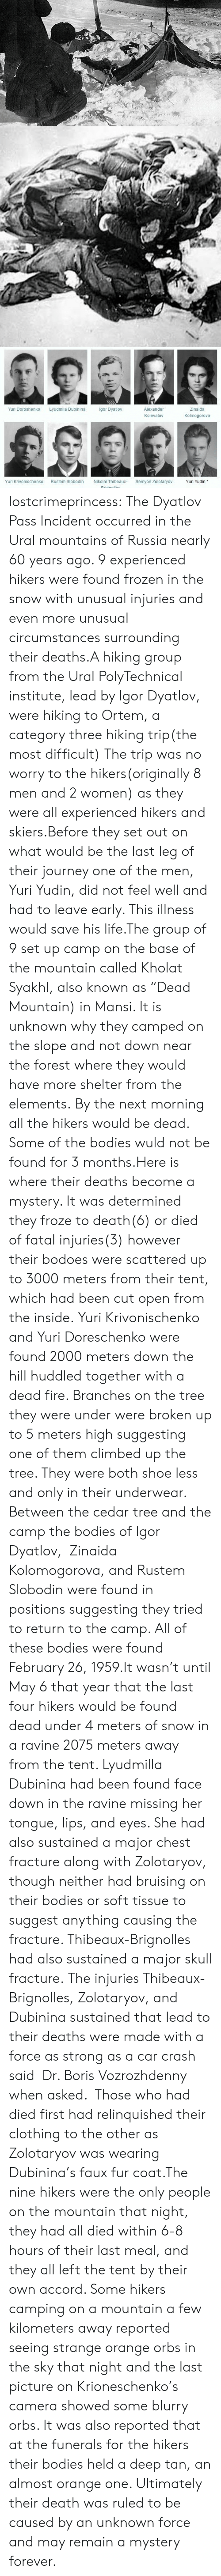 """the mountain: Yuri Doroshenko  Lyudmila Dubinina  gor Dyatlov  Alexander  Zinaida  Kolmogorova  Kolevatov  Yuri Krivonischenko  Rustem Slobodin  Nikolai Thibeaux-  Semyon Zolotaryov  Yuri Yudin* lostcrimeprincess:  The Dyatlov Pass Incident occurred in the Ural mountains of Russia nearly 60 years ago. 9 experienced hikers were found frozen in the snow with unusual injuries and even more unusual circumstances surrounding their deaths.A hiking group from the Ural PolyTechnical institute, lead by Igor Dyatlov, were hiking to Ortem, a category three hiking trip(the most difficult) The trip was no worry to the hikers(originally 8 men and 2 women) as they were all experienced hikers and skiers.Before they set out on what would be the last leg of their journey one of the men, Yuri Yudin, did not feel well and had to leave early. This illness would save his life.The group of 9 set up camp on the base of the mountain called Kholat Syakhl, also known as""""Dead Mountain) in Mansi. It is unknown why they camped on the slope and not down near the forest where they would have more shelter from the elements.By the next morning all the hikers would be dead. Some of the bodies wuld not be found for 3 months.Here is where their deaths become a mystery. It was determined they froze to death(6) or died of fatal injuries(3) however their bodoes were scattered up to 3000 meters from their tent, which had been cut open from the inside.Yuri Krivonischenko and Yuri Doreschenko were found 2000 meters down the hill huddled together with a dead fire. Branches on the tree they were under were broken up to 5 meters high suggesting one of them climbed up the tree. They were both shoe less and only in their underwear. Between the cedar tree and the camp the bodies of Igor Dyatlov, Zinaida Kolomogorova, and Rustem Slobodin were found in positions suggesting they tried to return to the camp. All of these bodies were found February 26, 1959.It wasn't until May 6 that year that the last four hikers woul"""